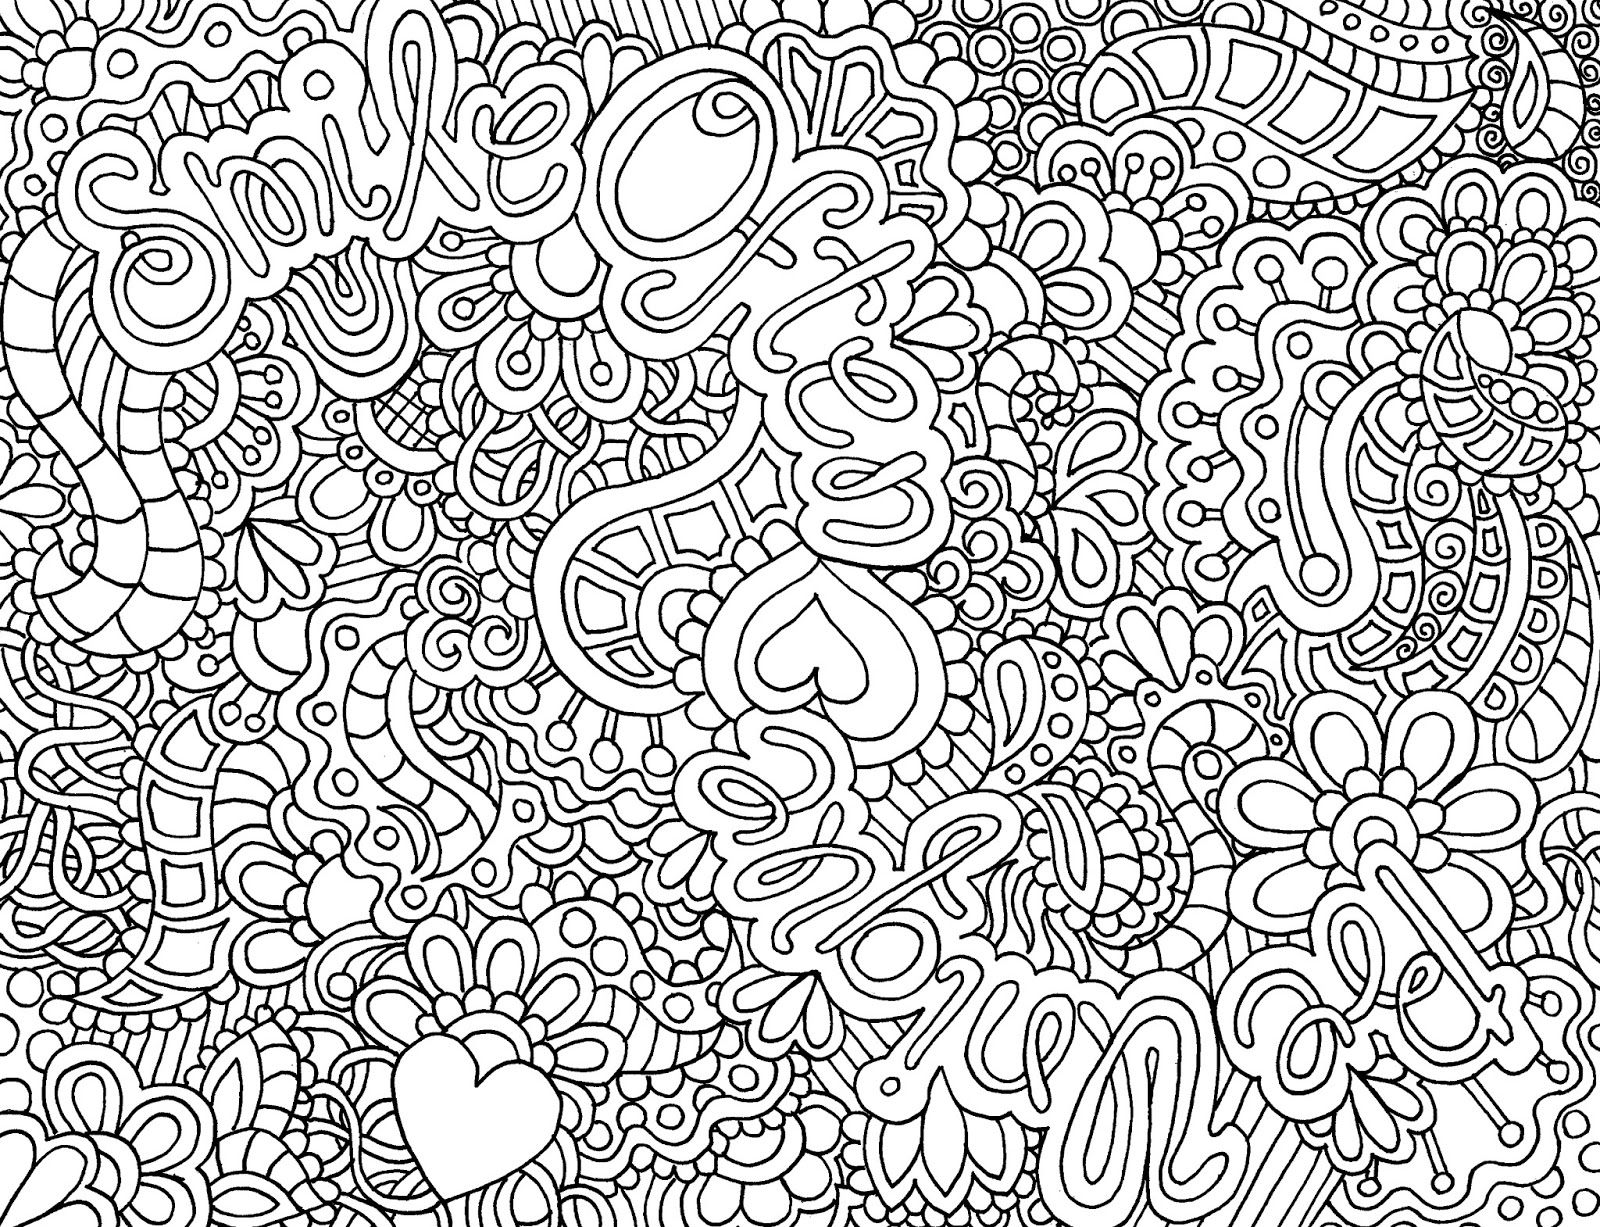 Difficult Abstract Coloring Pages Another Cute Zendoodle That